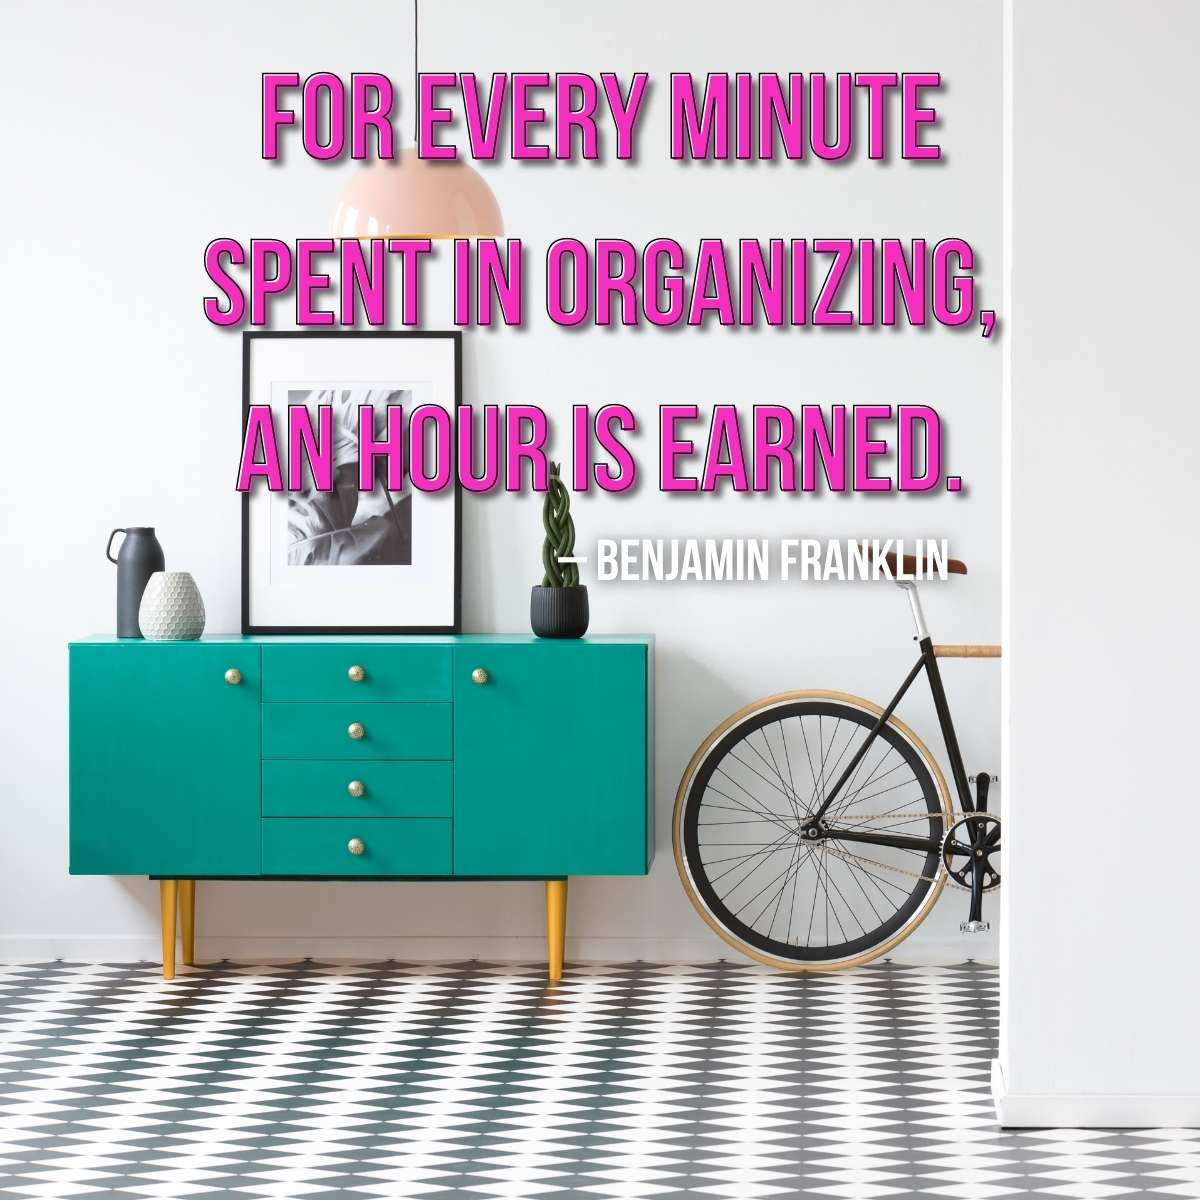 "image of teal buffet chest of drawers next to an old fashioned bicycle with black and white tile floors. Quote on image says ""For every minute spent in organizing an hour is earned"" by Benjamin Franklin - decluttering your home printable checklist for a messy house spring cleaning checklist post"